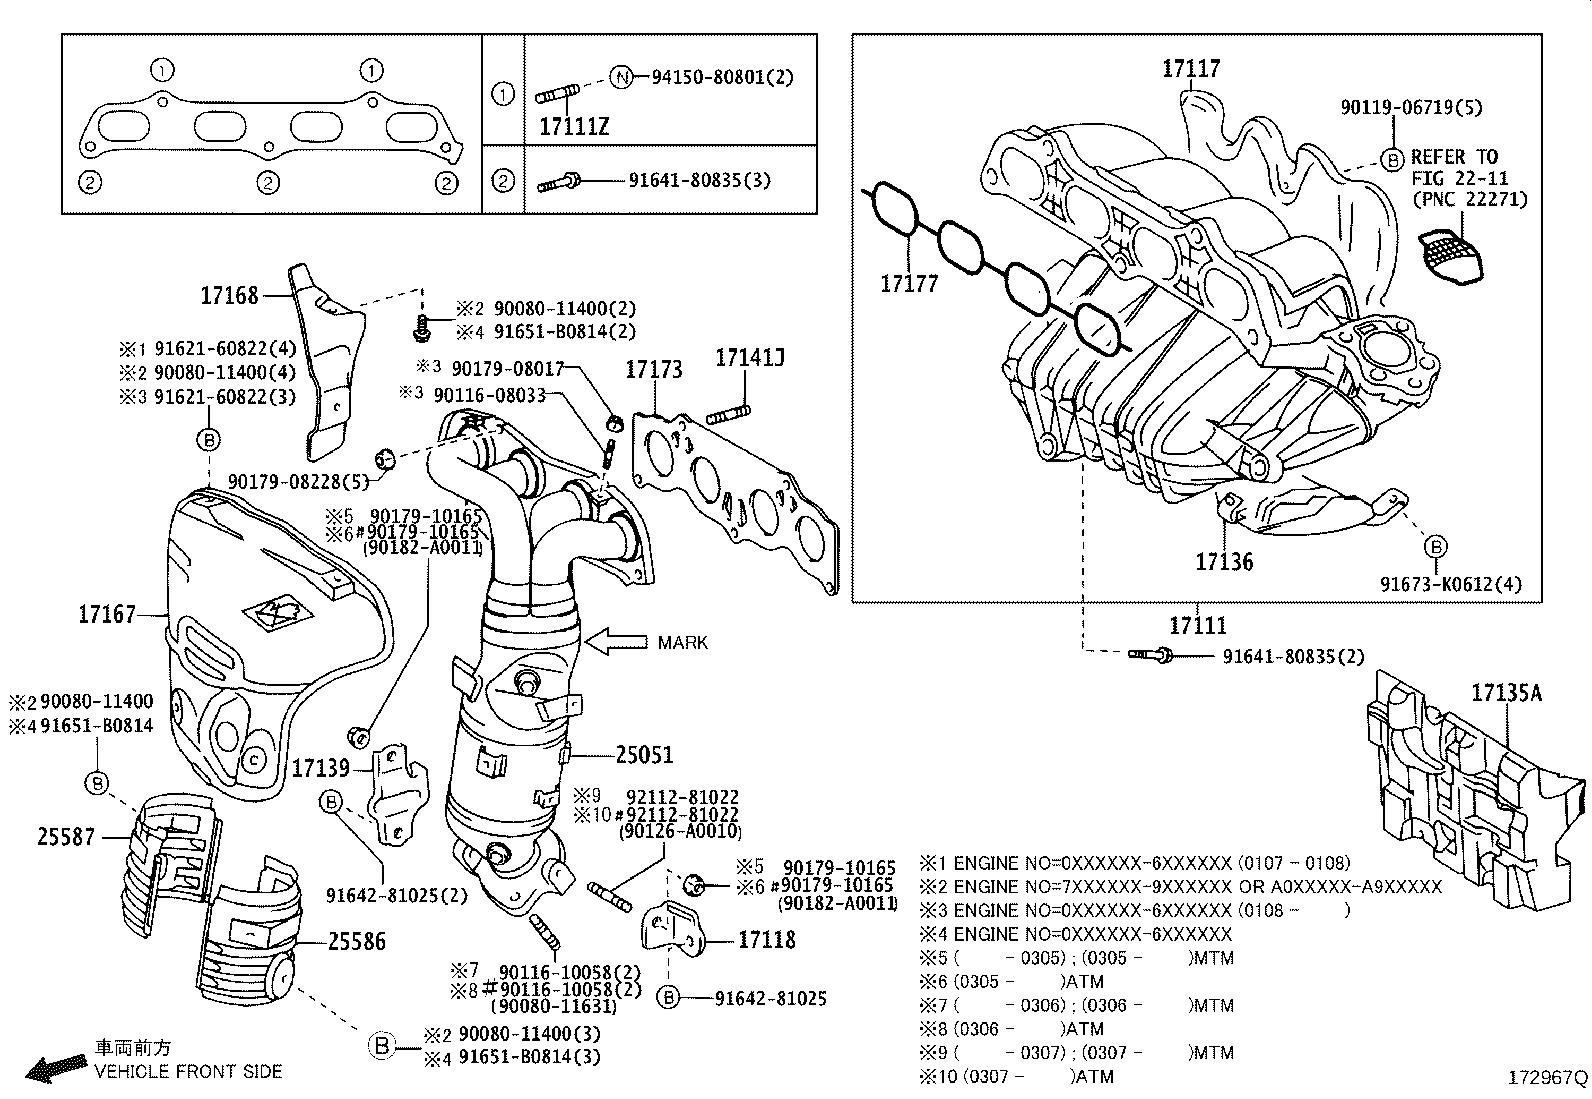 Toyota Camry Valve assembly, intake air control, no. 2